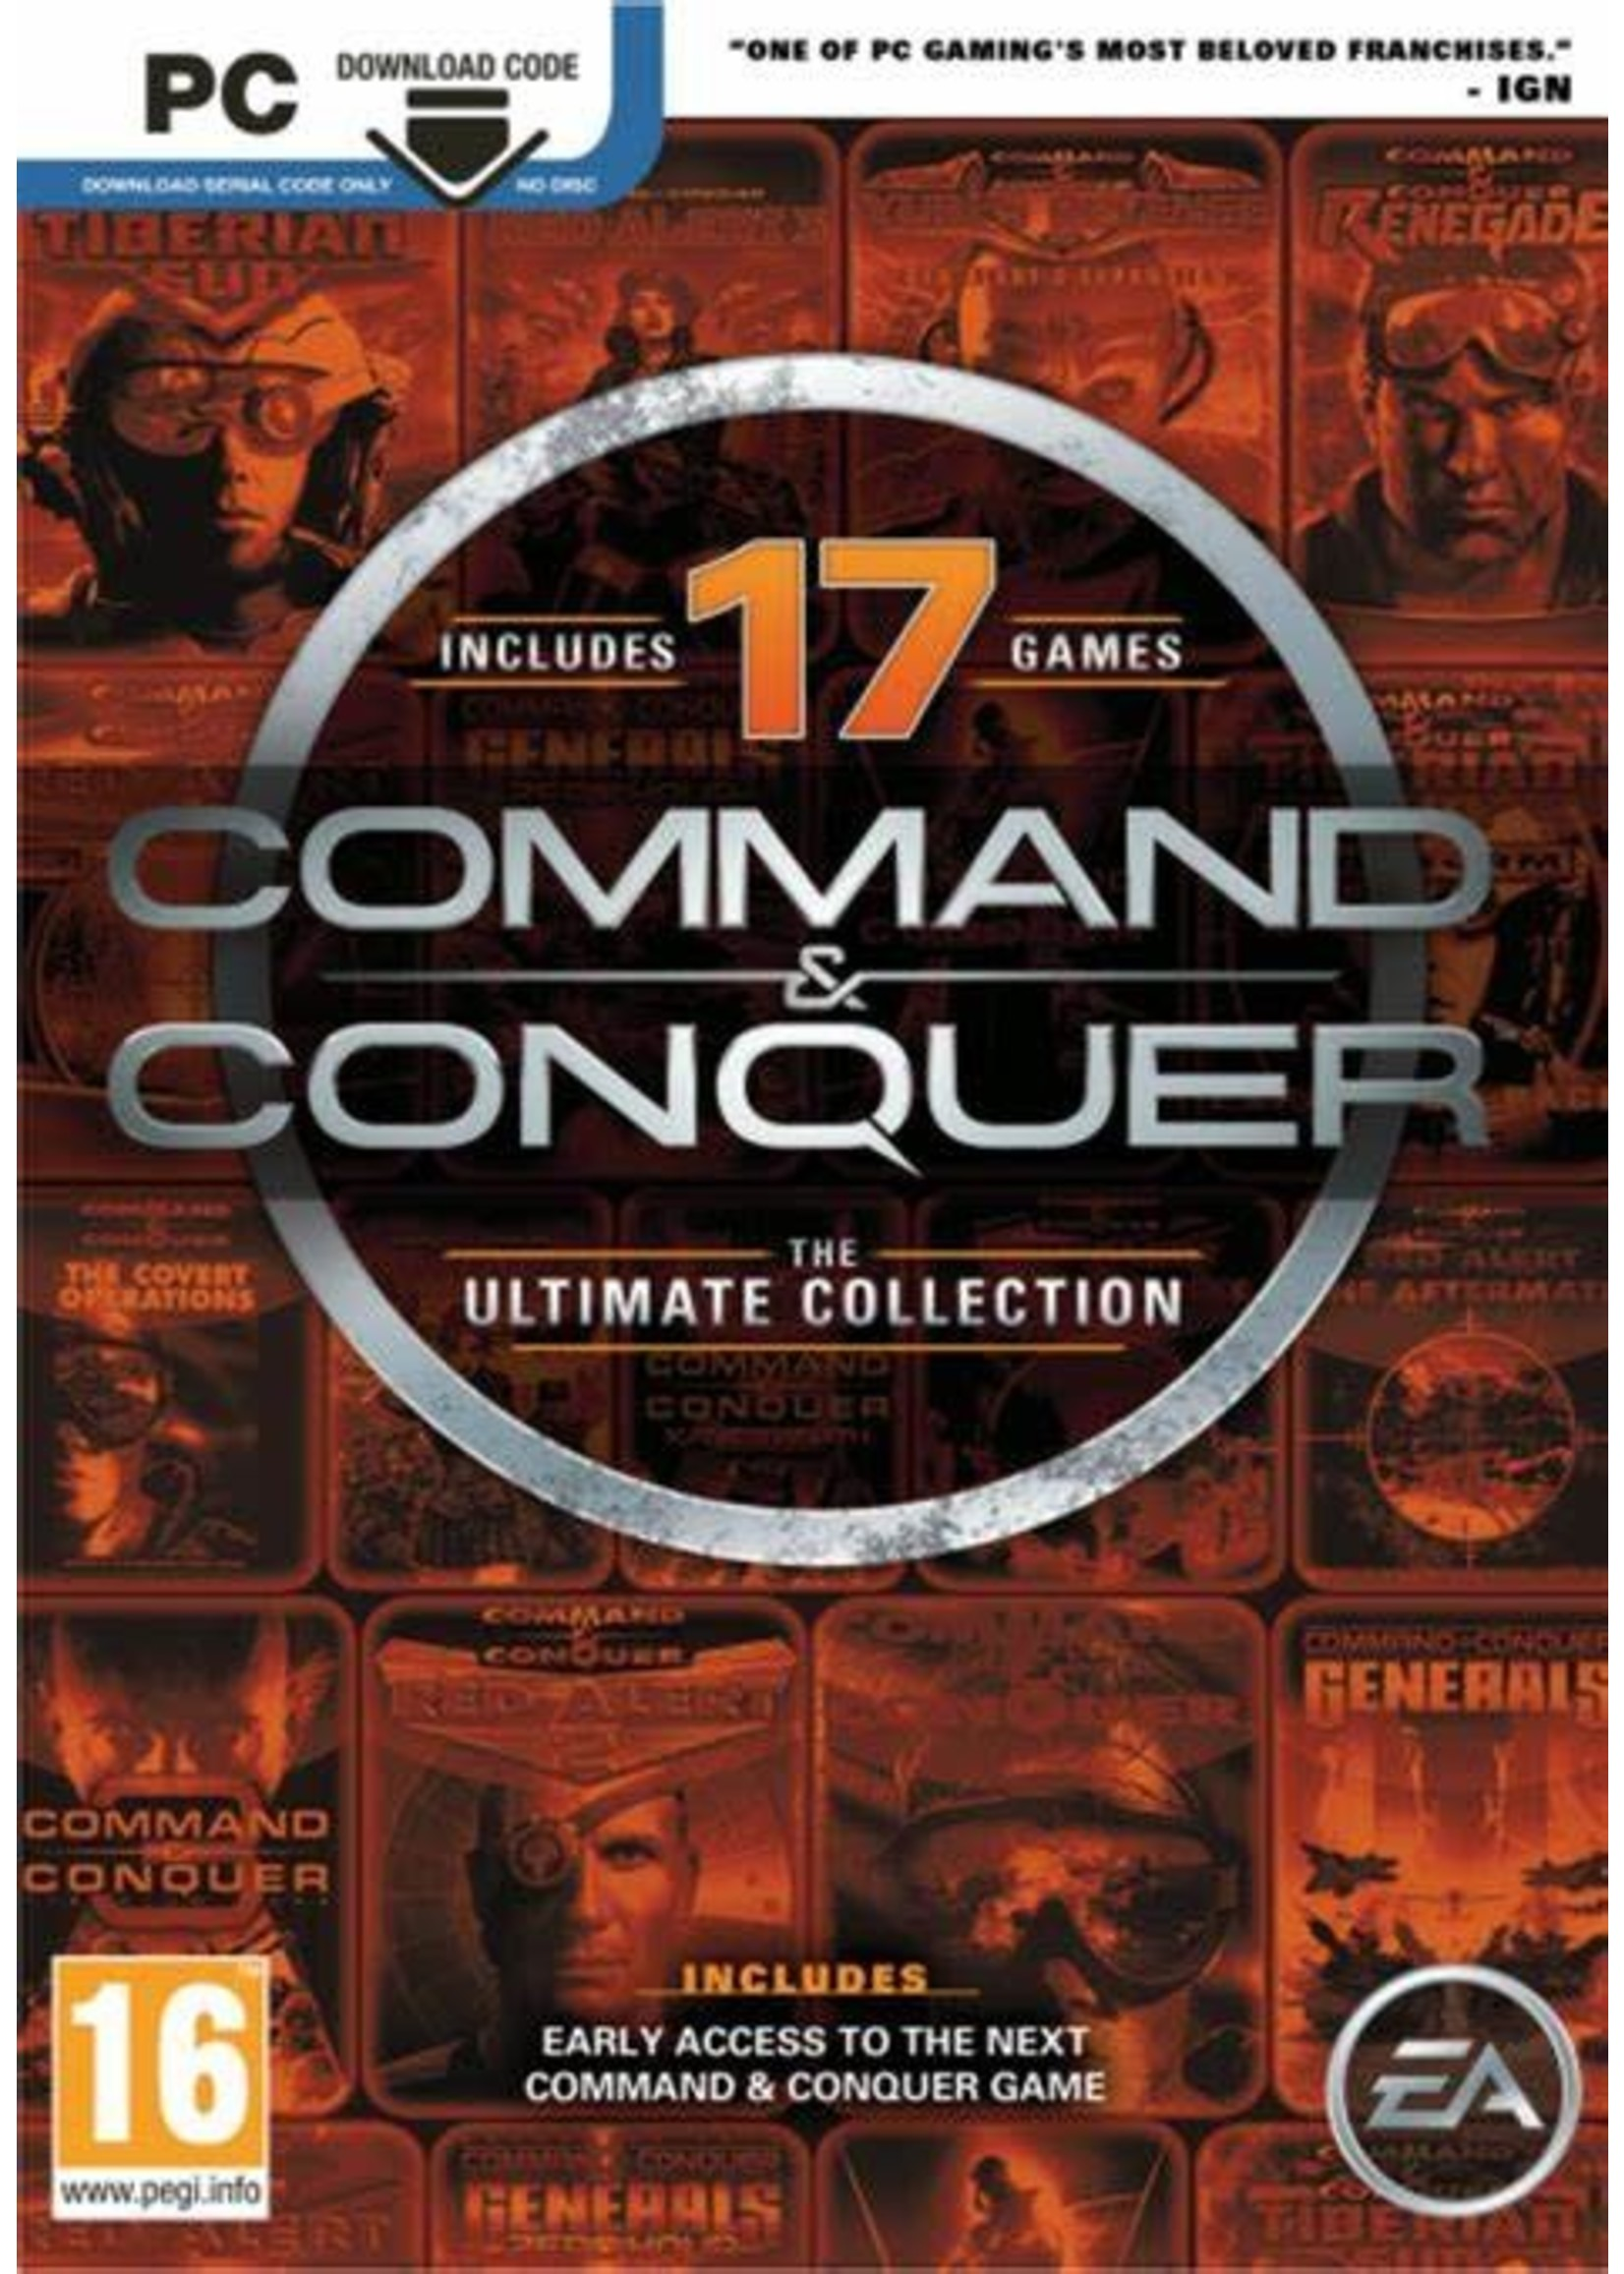 Command & Conquer Ultimate Collection PC Games